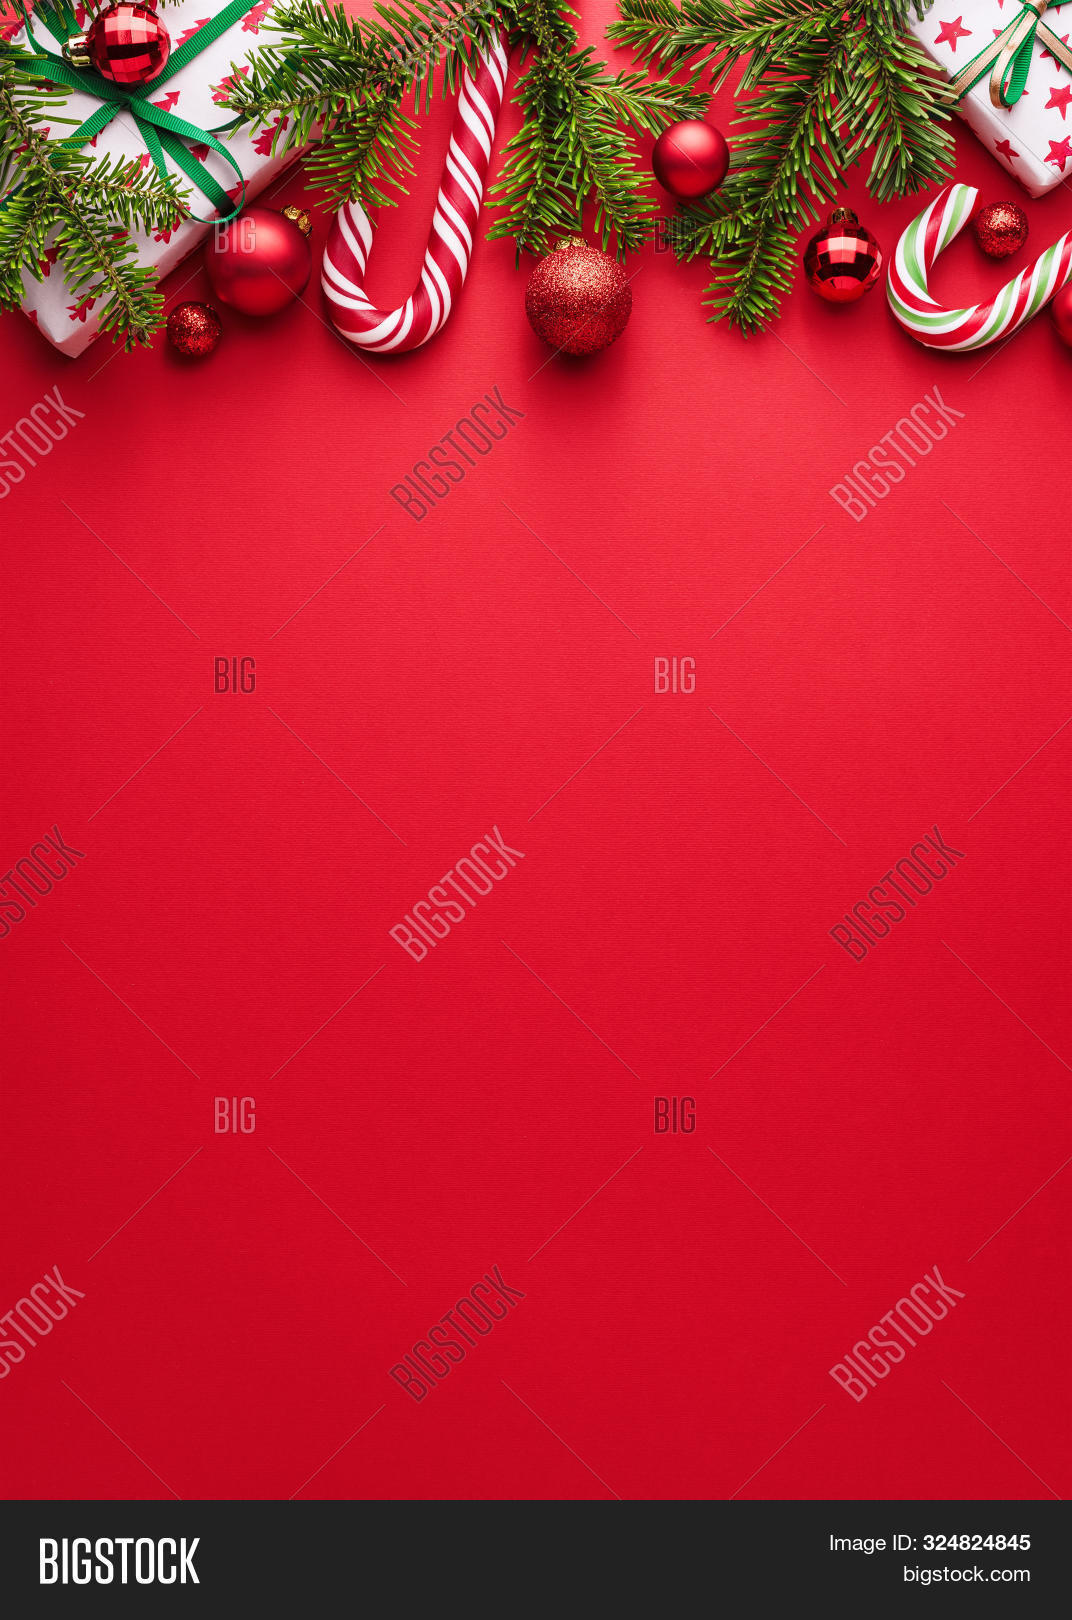 Red background. Copy space for Christmas creep. Border of fir branches, gifts, Christmas balls and candy cane